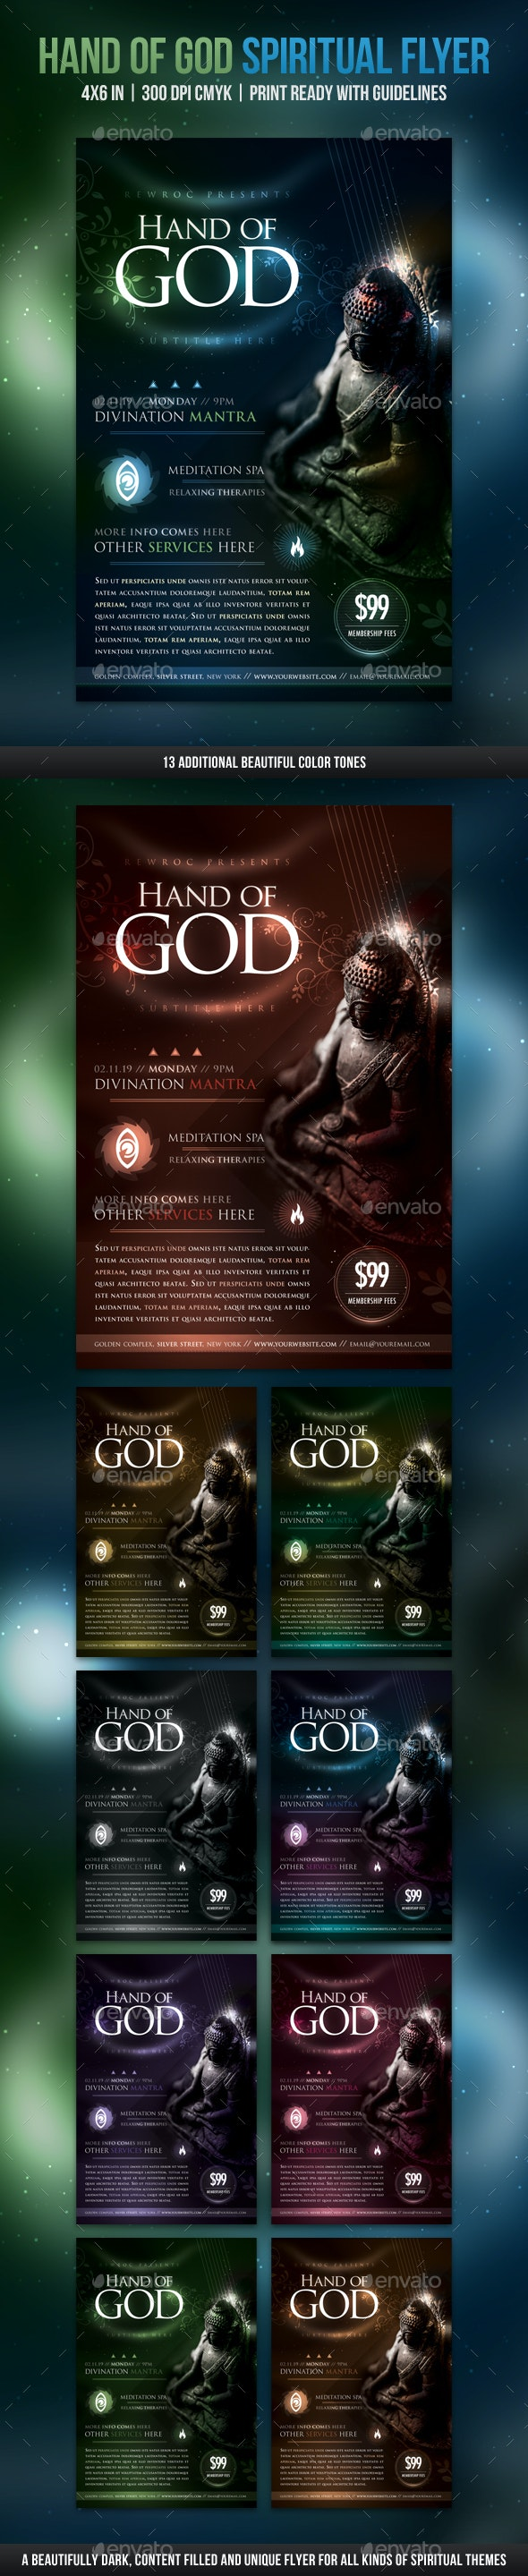 Hand Of God Spiritual Flyer - Miscellaneous Events